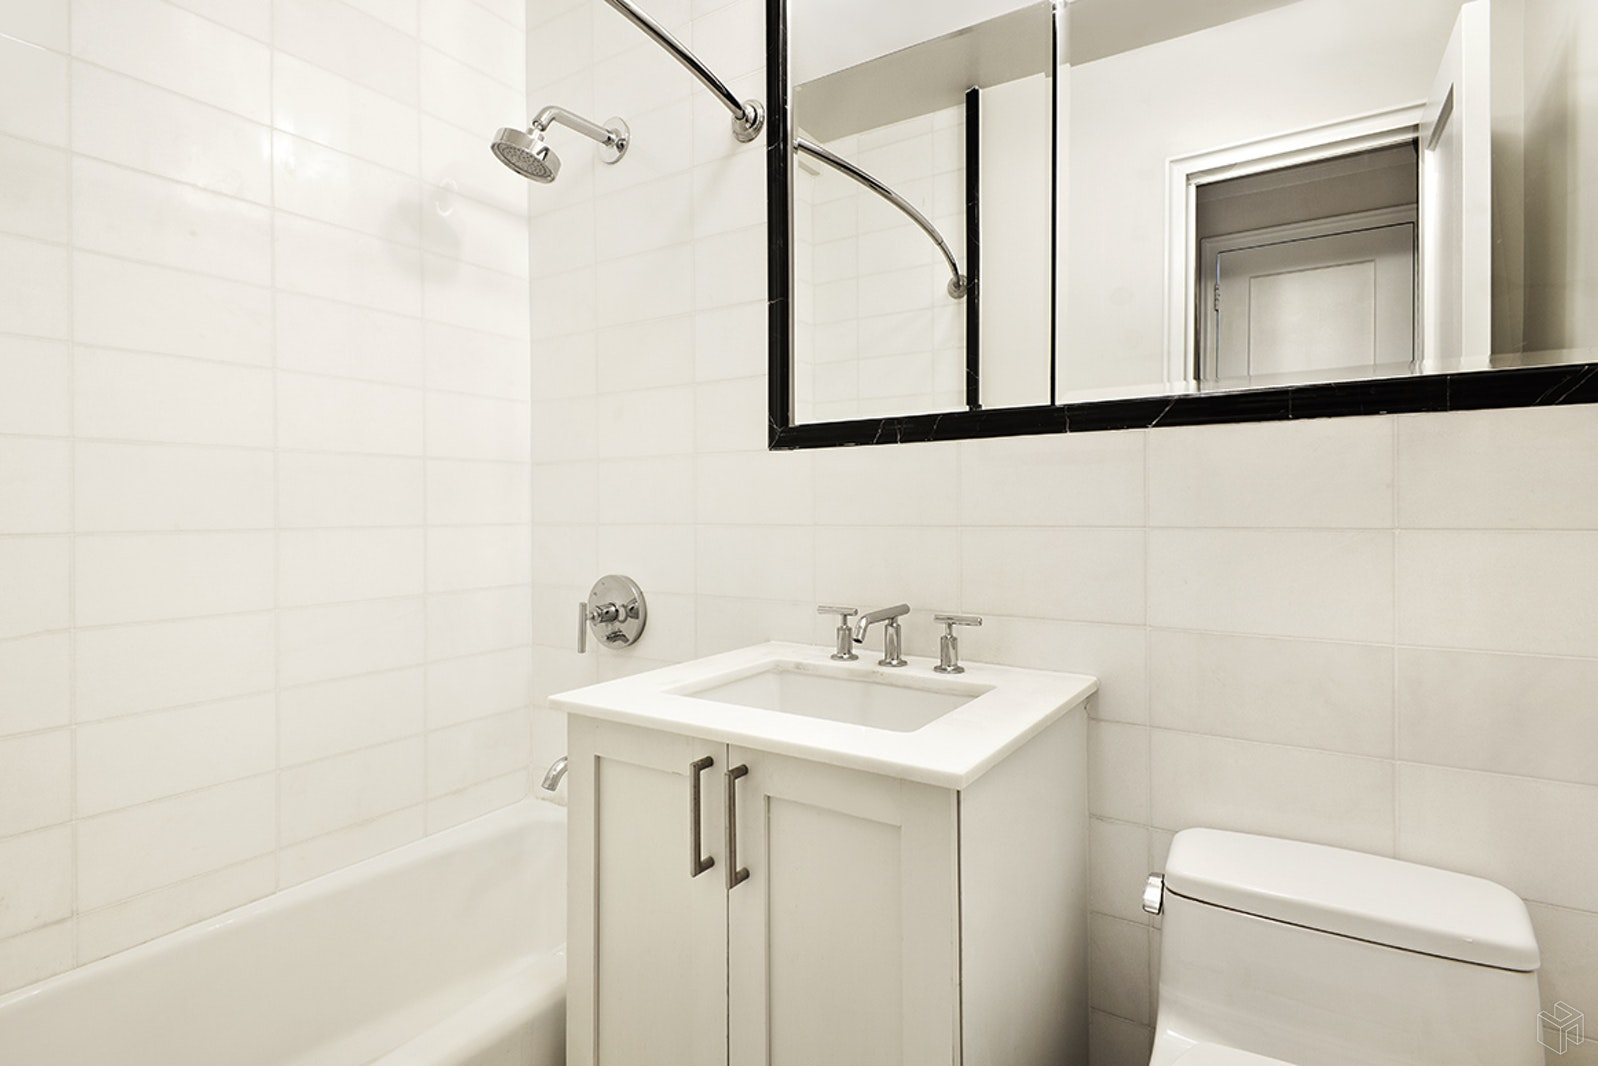 340 East 52nd Street 5f, Midtown East, NYC, 10022, $3,350, Rented Property, Halstead Real Estate, Photo 4